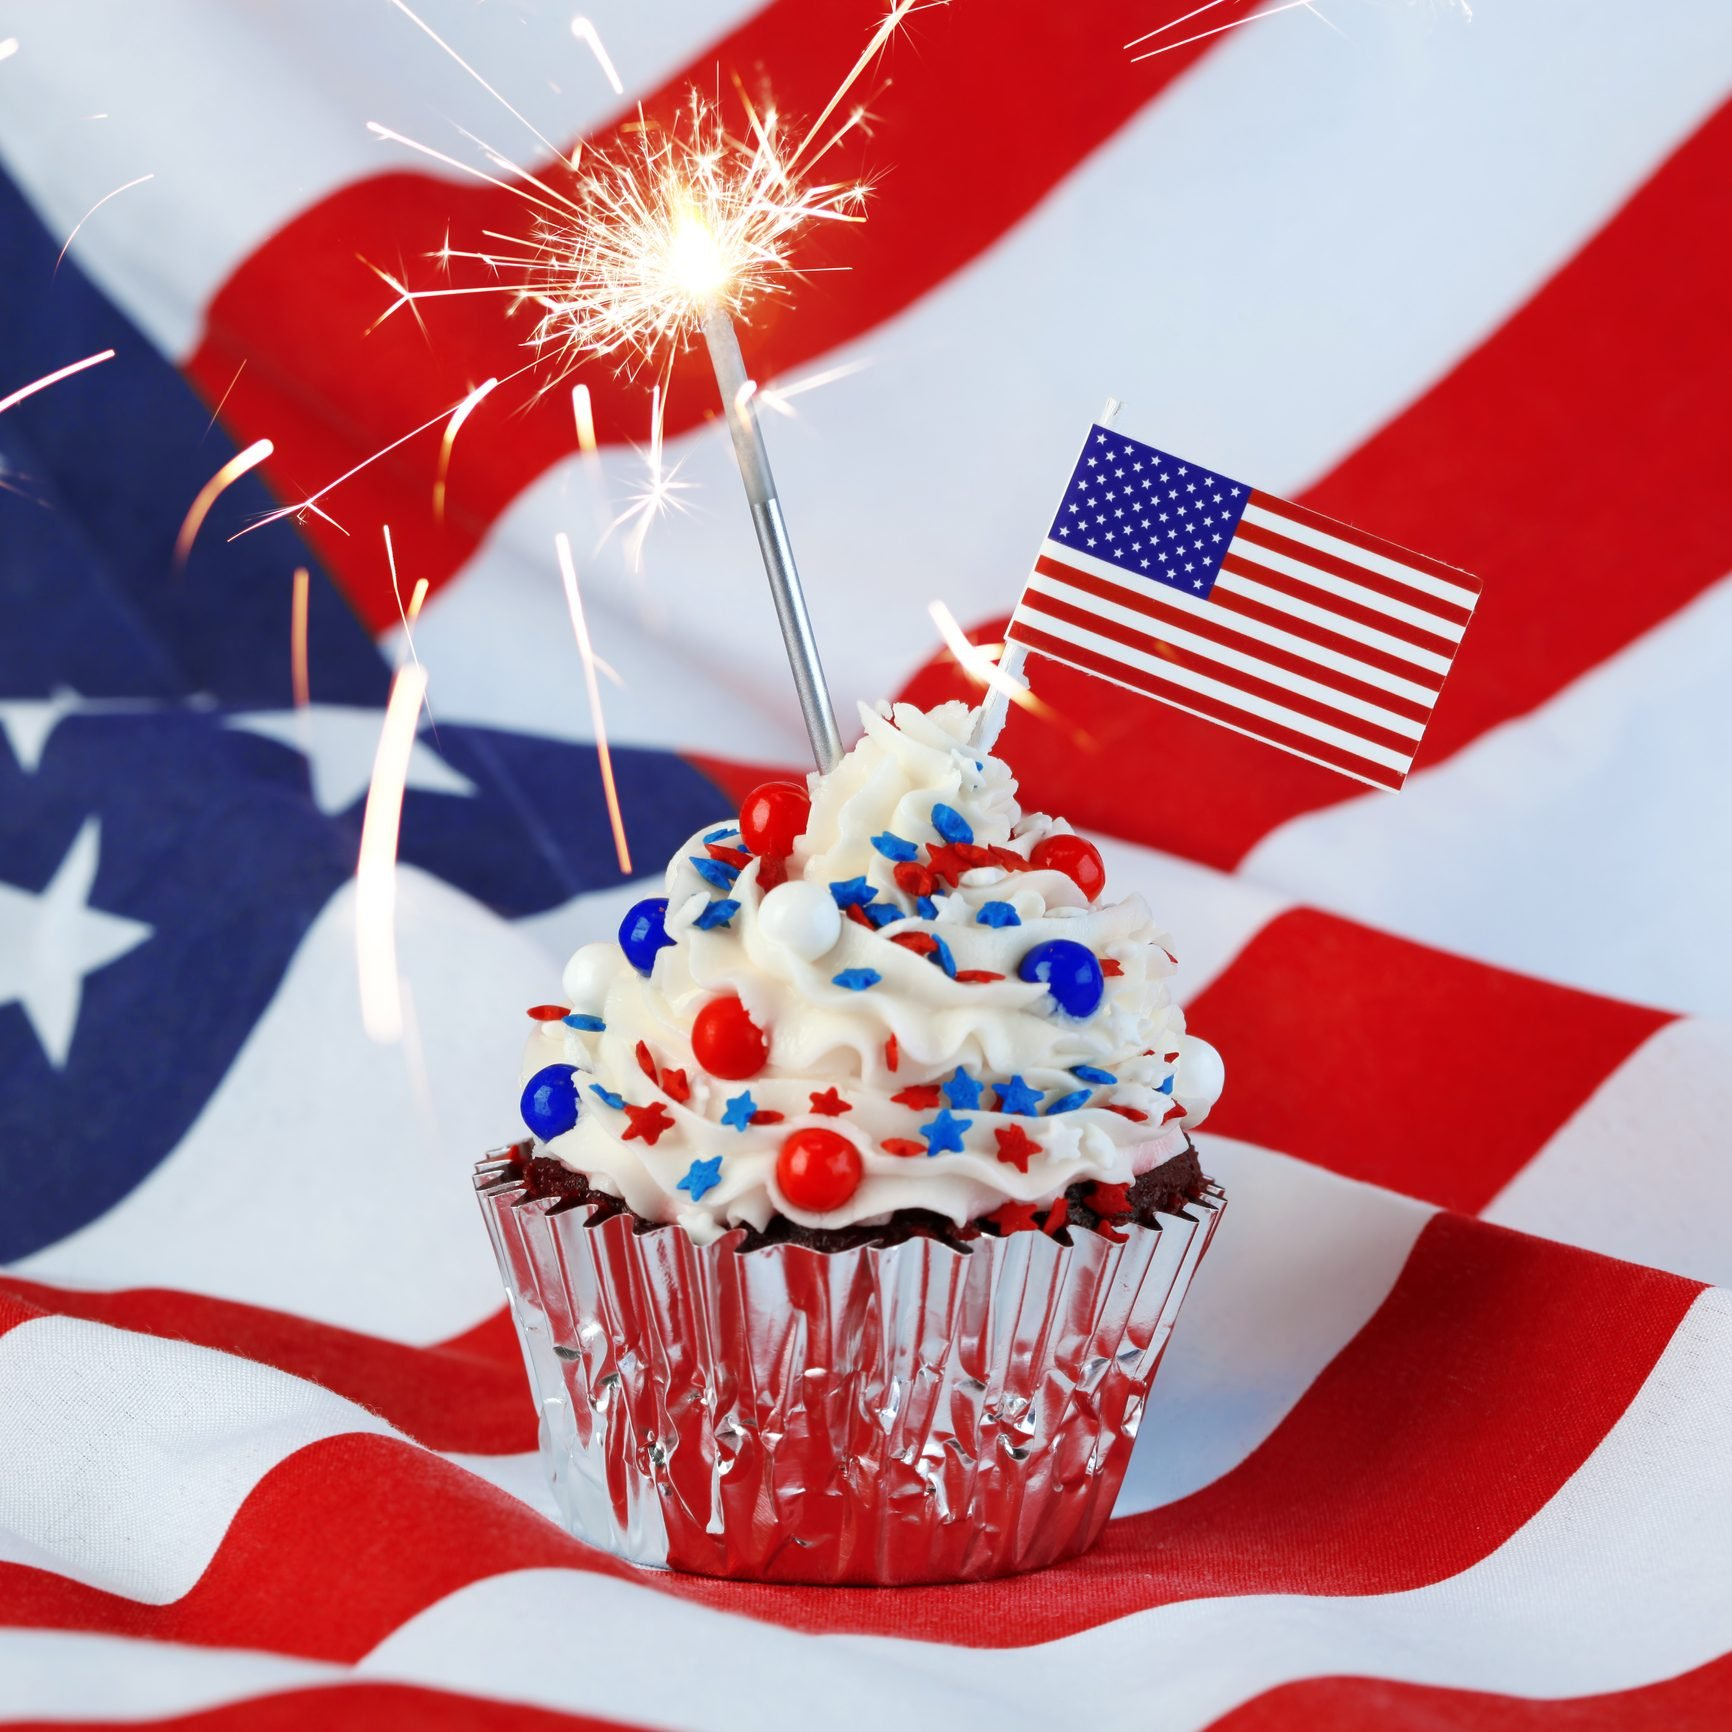 fourth of july desserts patriotic desserts america food